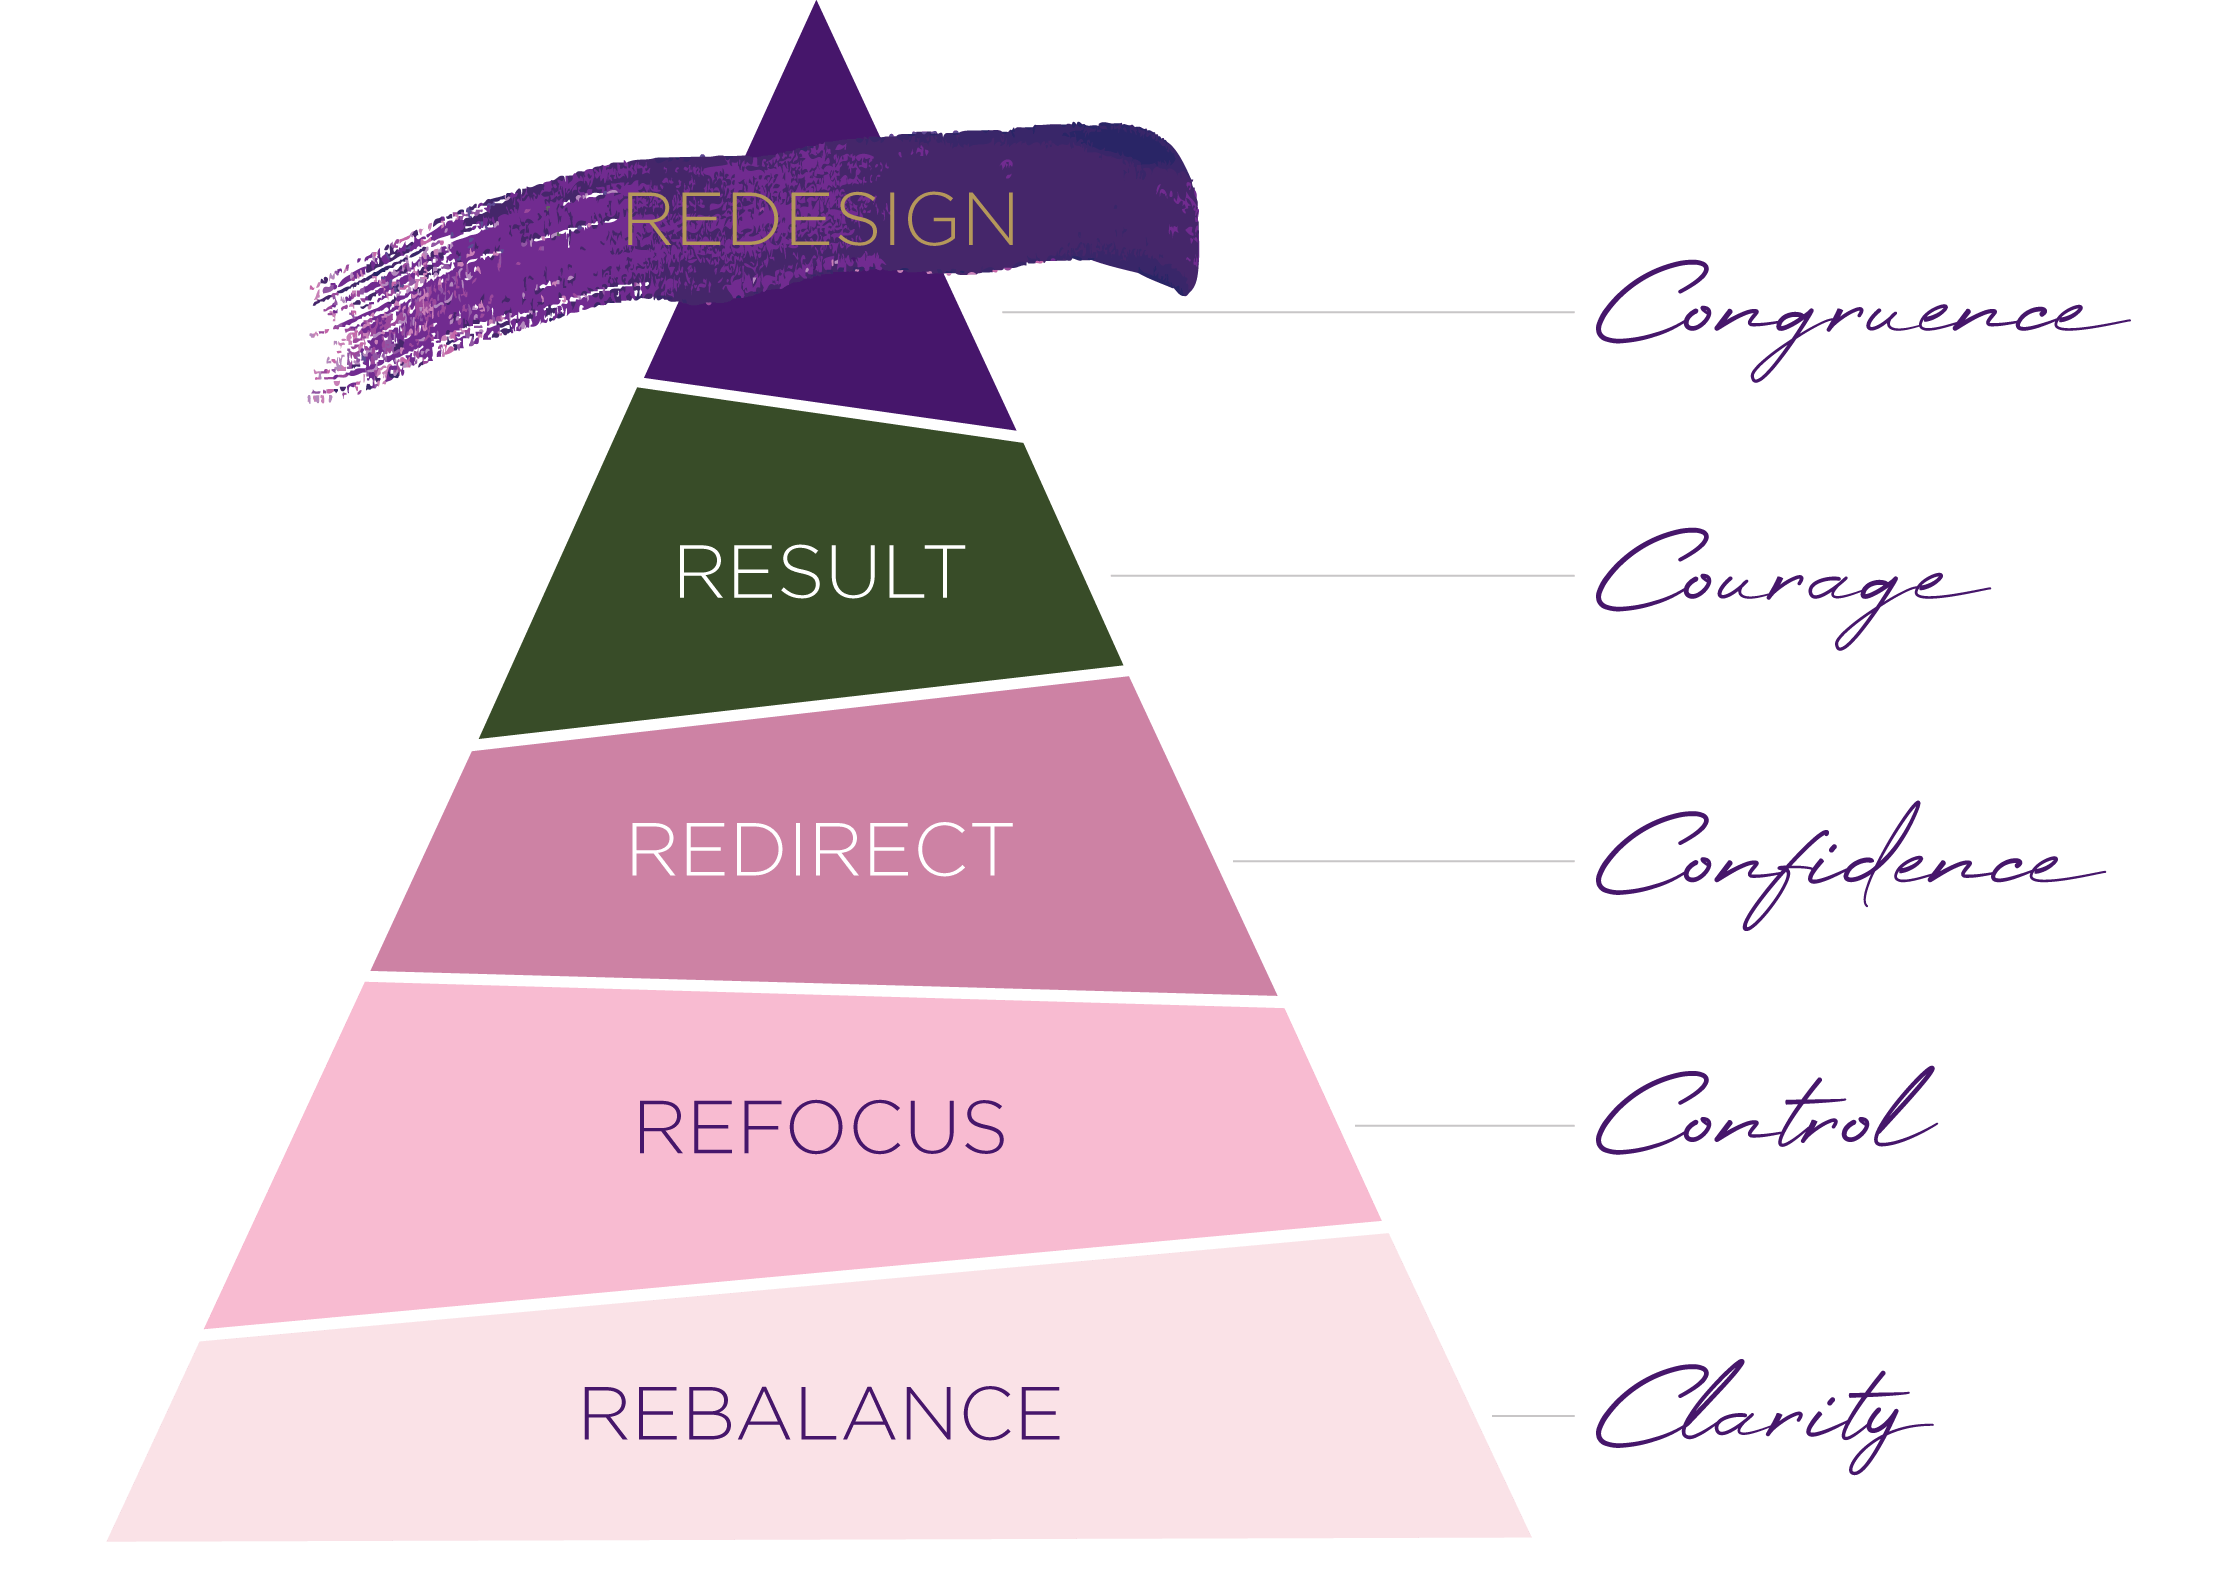 The Redesign Method by Neelam Challoner